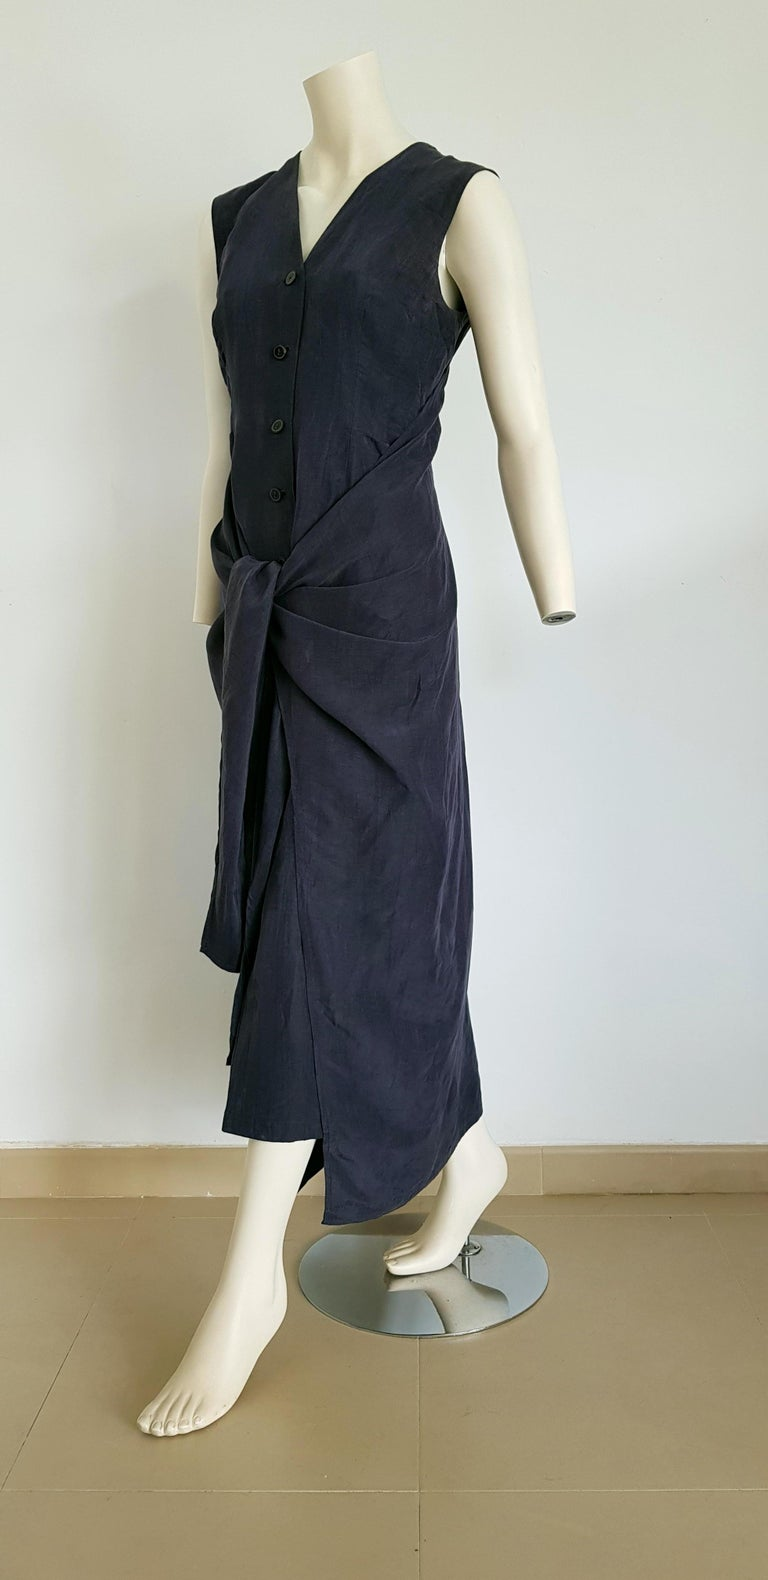 JIL SANDER blue silk linen dress, with bow front or back - Unworn, New.  SIZE: equivalent to about Small / Medium, please review approx measurements as follows in cm: lenght 133, chest underarm to underarm 46, bust circumference 90, shoulder from